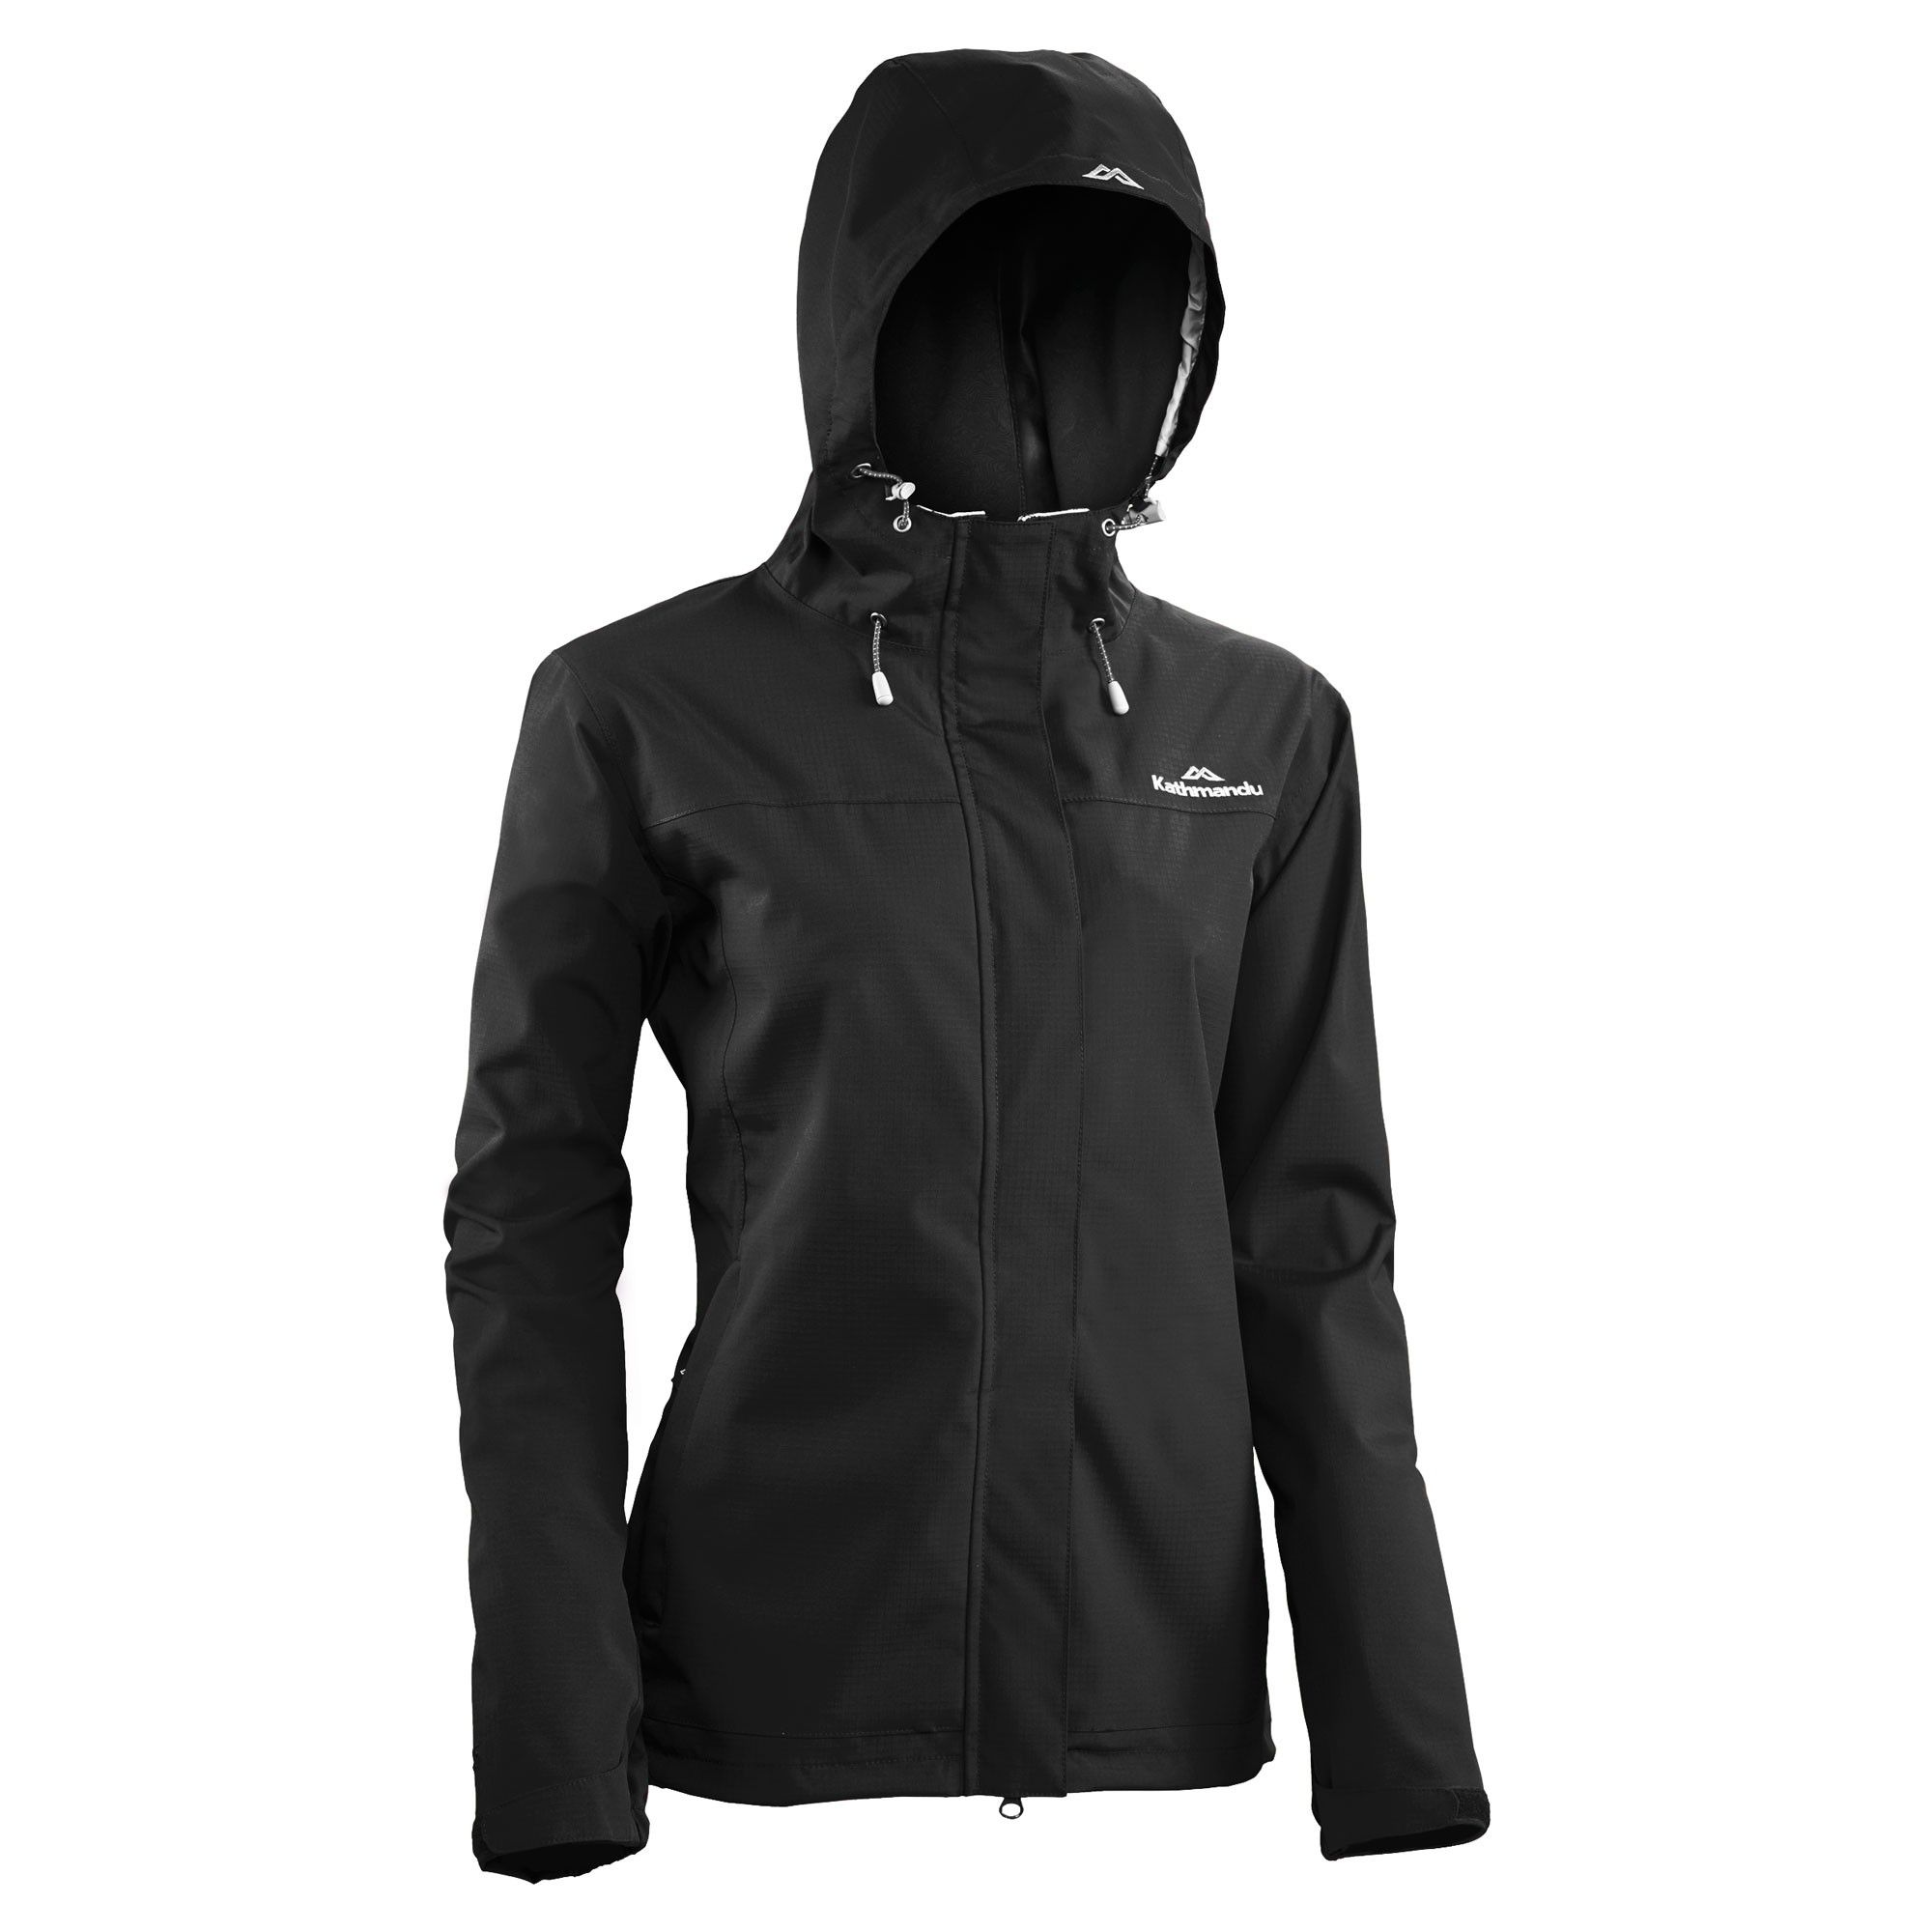 Buy Monrovia Women's 2.5 Layer Waterproof Jacket v2 - Black online ...